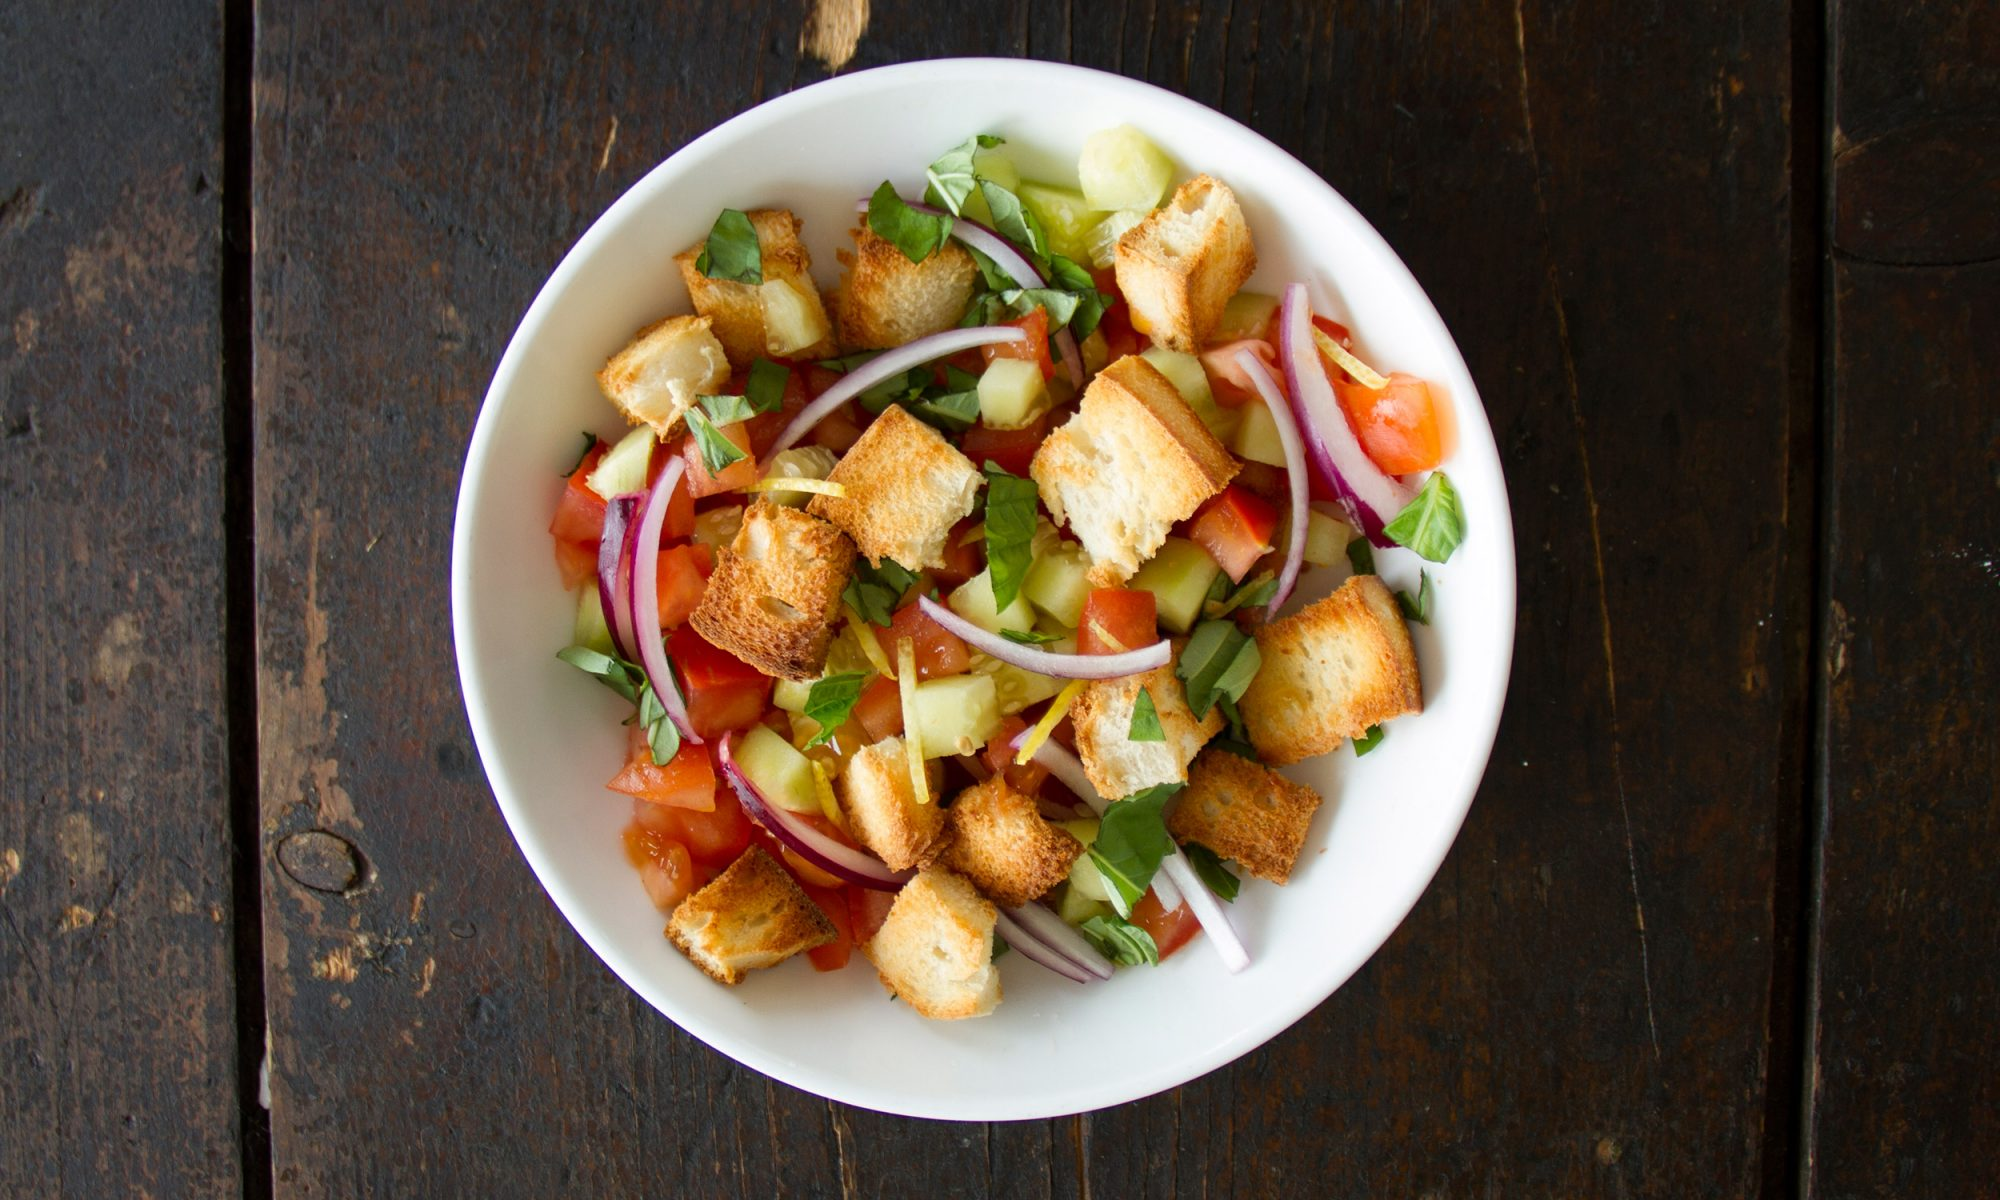 EC: Panzanella: A Clever Way to Use Day-Old Bread and Juicy Tomatoes